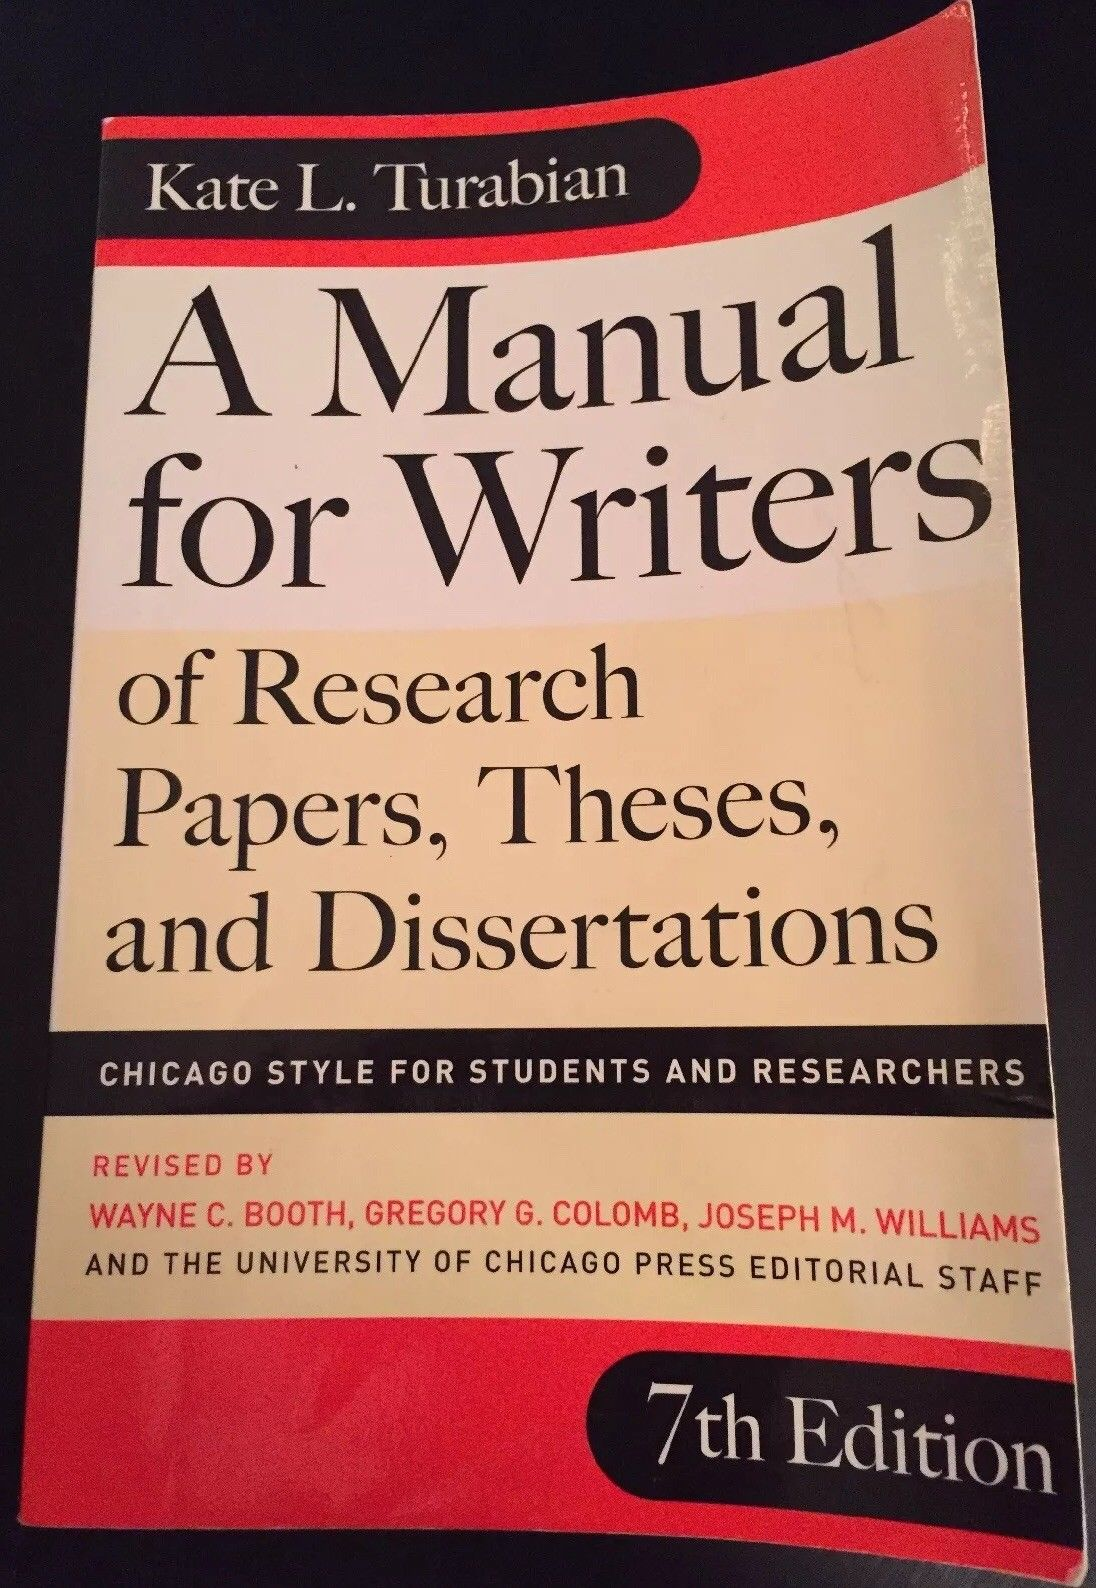 004 Manual For Writers Of Research Papers Theses And Dissertations 7th Edition Paper S Sensational A Full